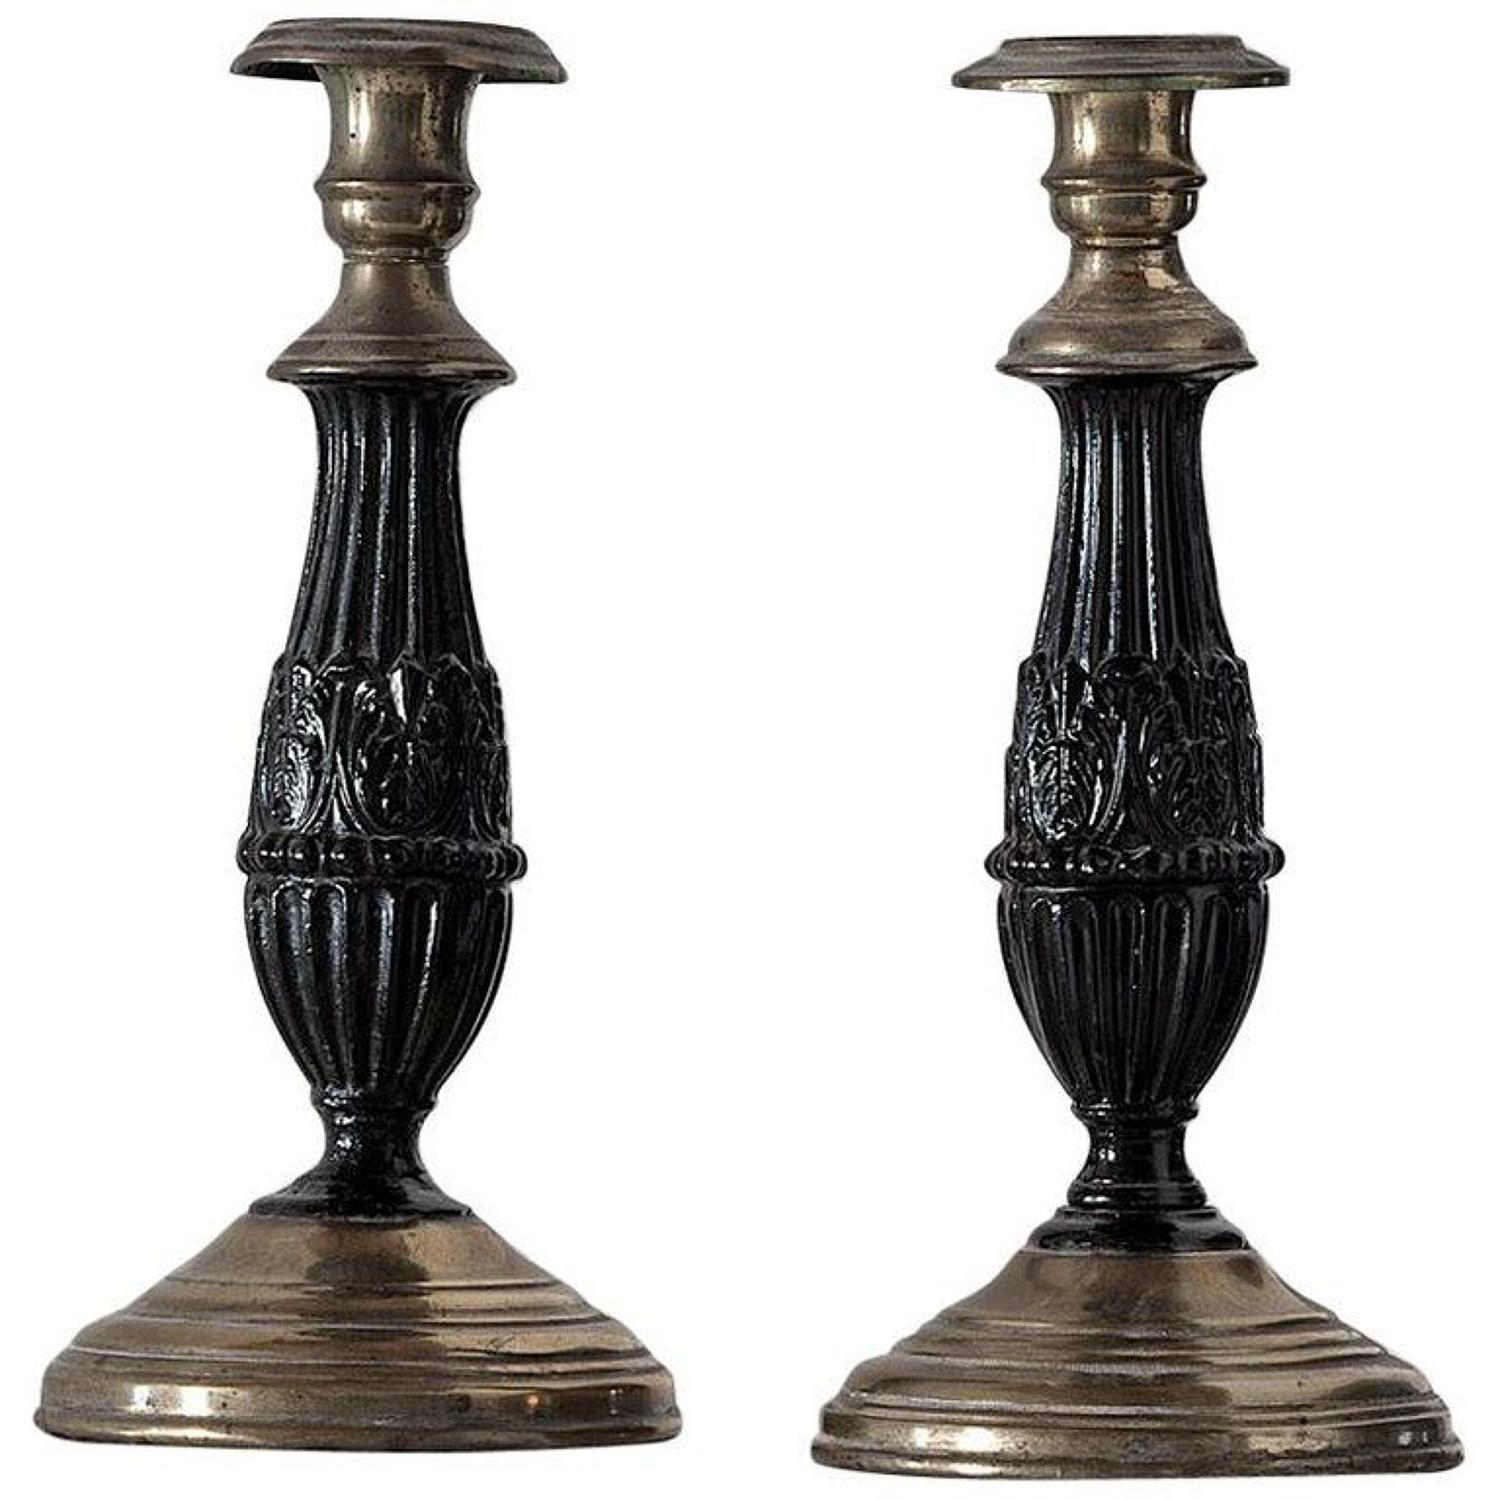 Pair of Chic Empire Candlesticks, circa 1810